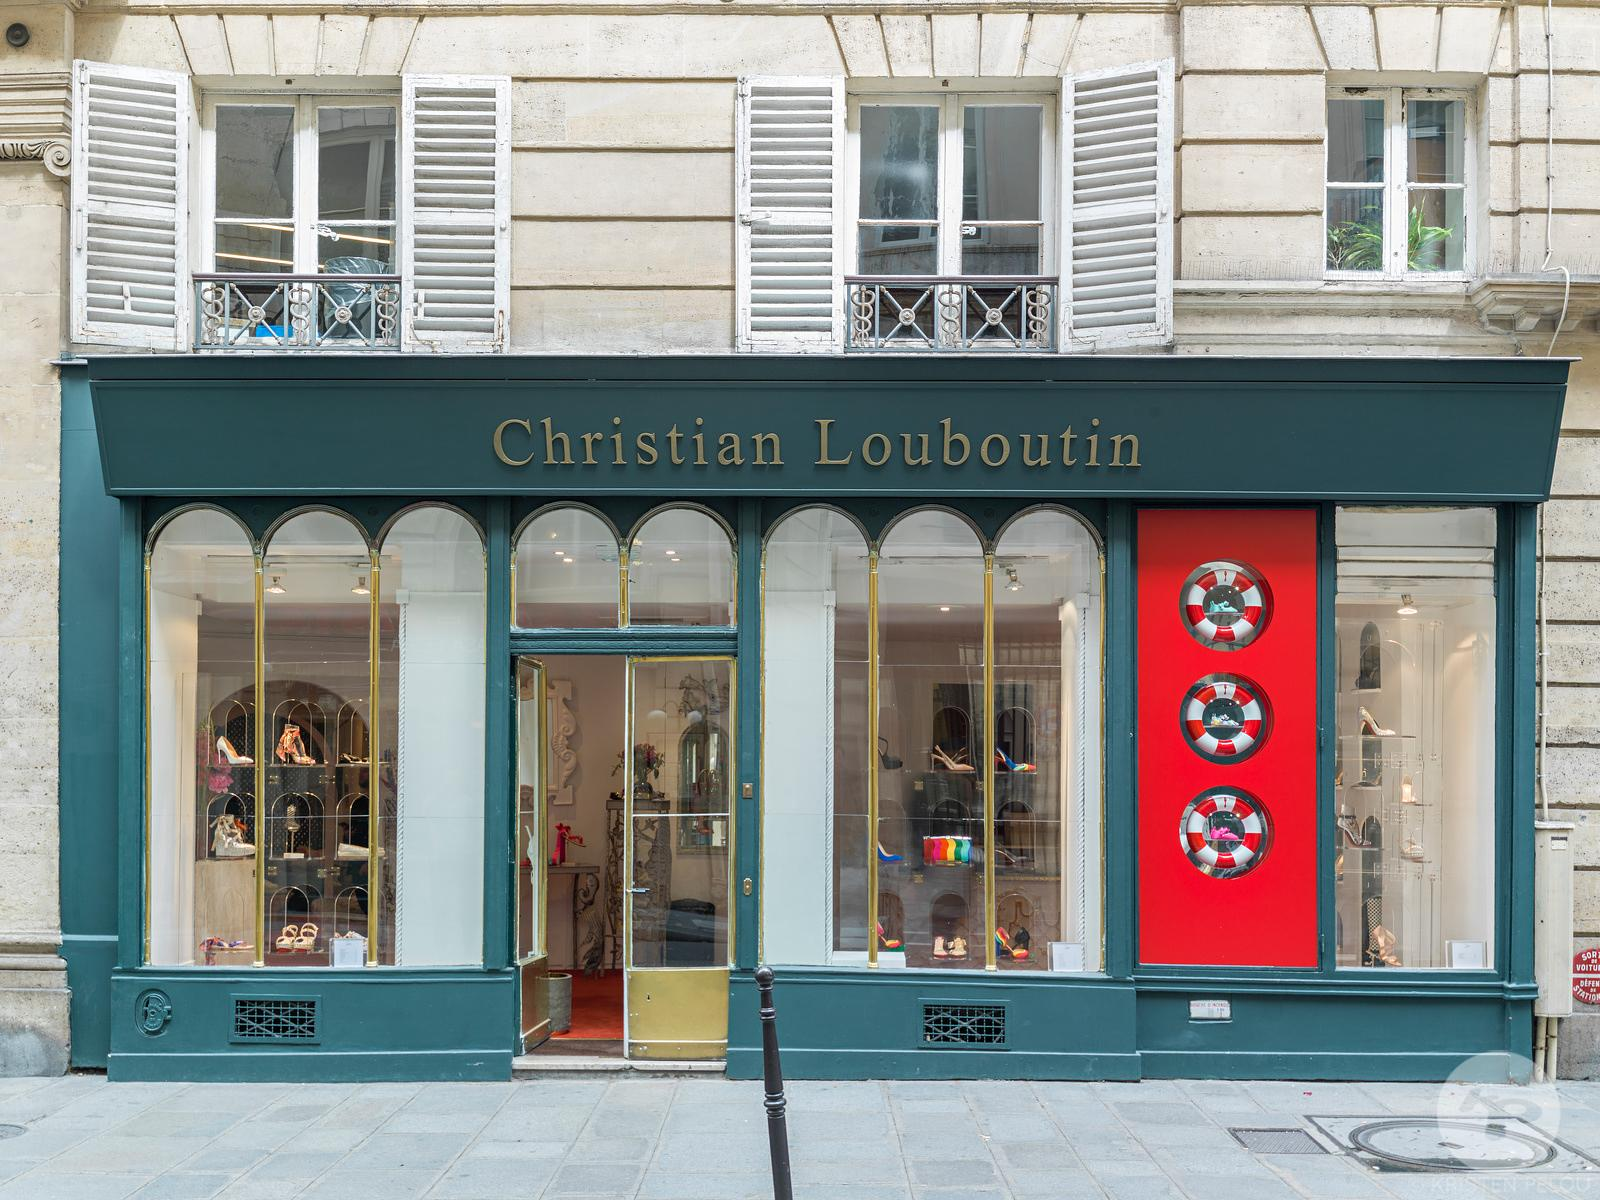 Christian Louboutin windows by Studio XAG. Photo ©Kristen Pelou